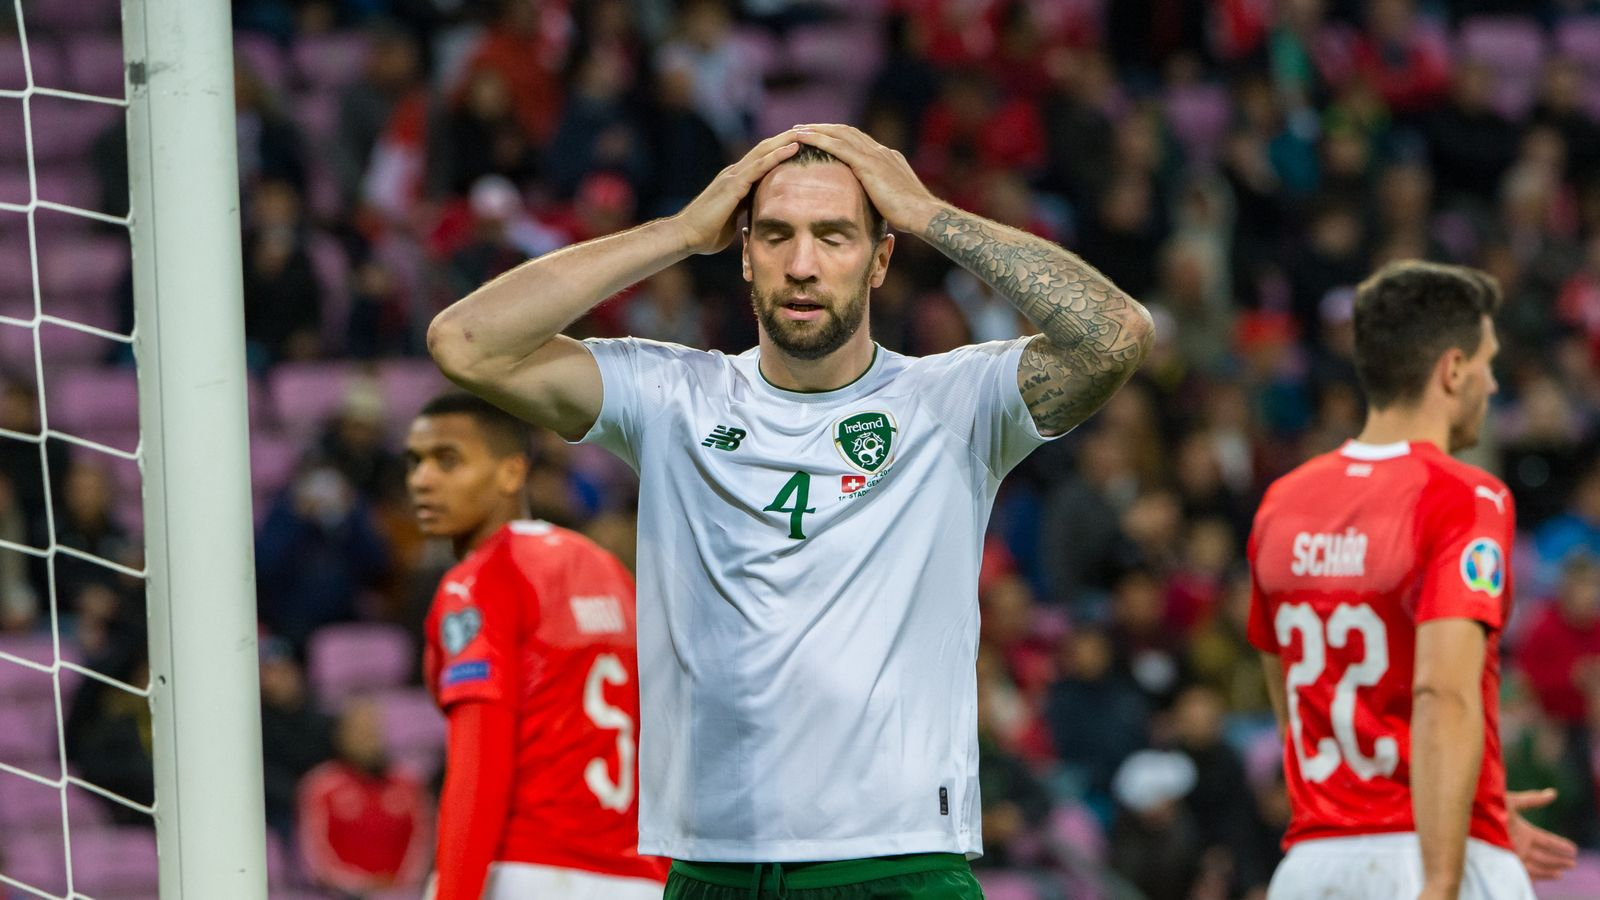 Switzerland 2-0 Republic of Ireland: Mick McCarthy's side miss chance to qualify for Euro 2020